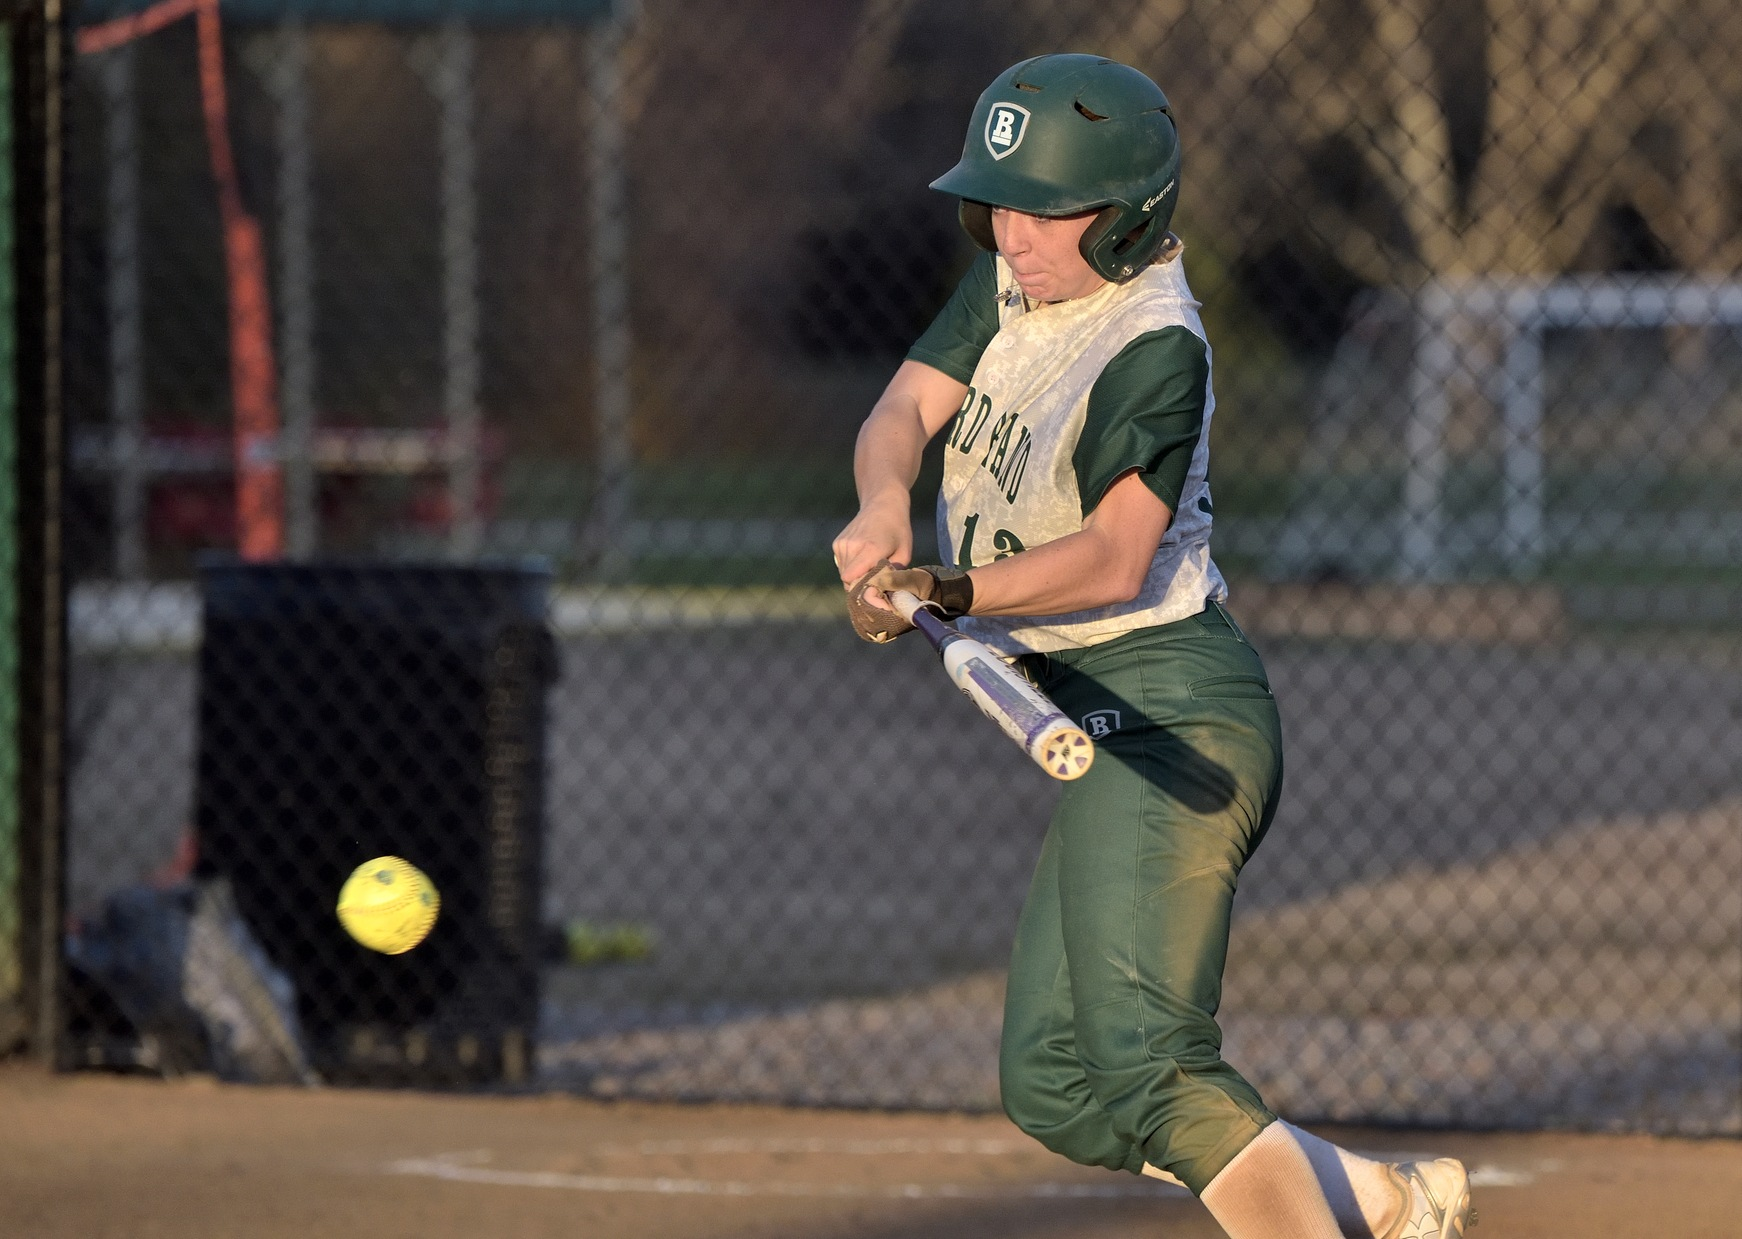 Richard Bland Splits Against Visiting Harford (Md.) 4-6, 12-4